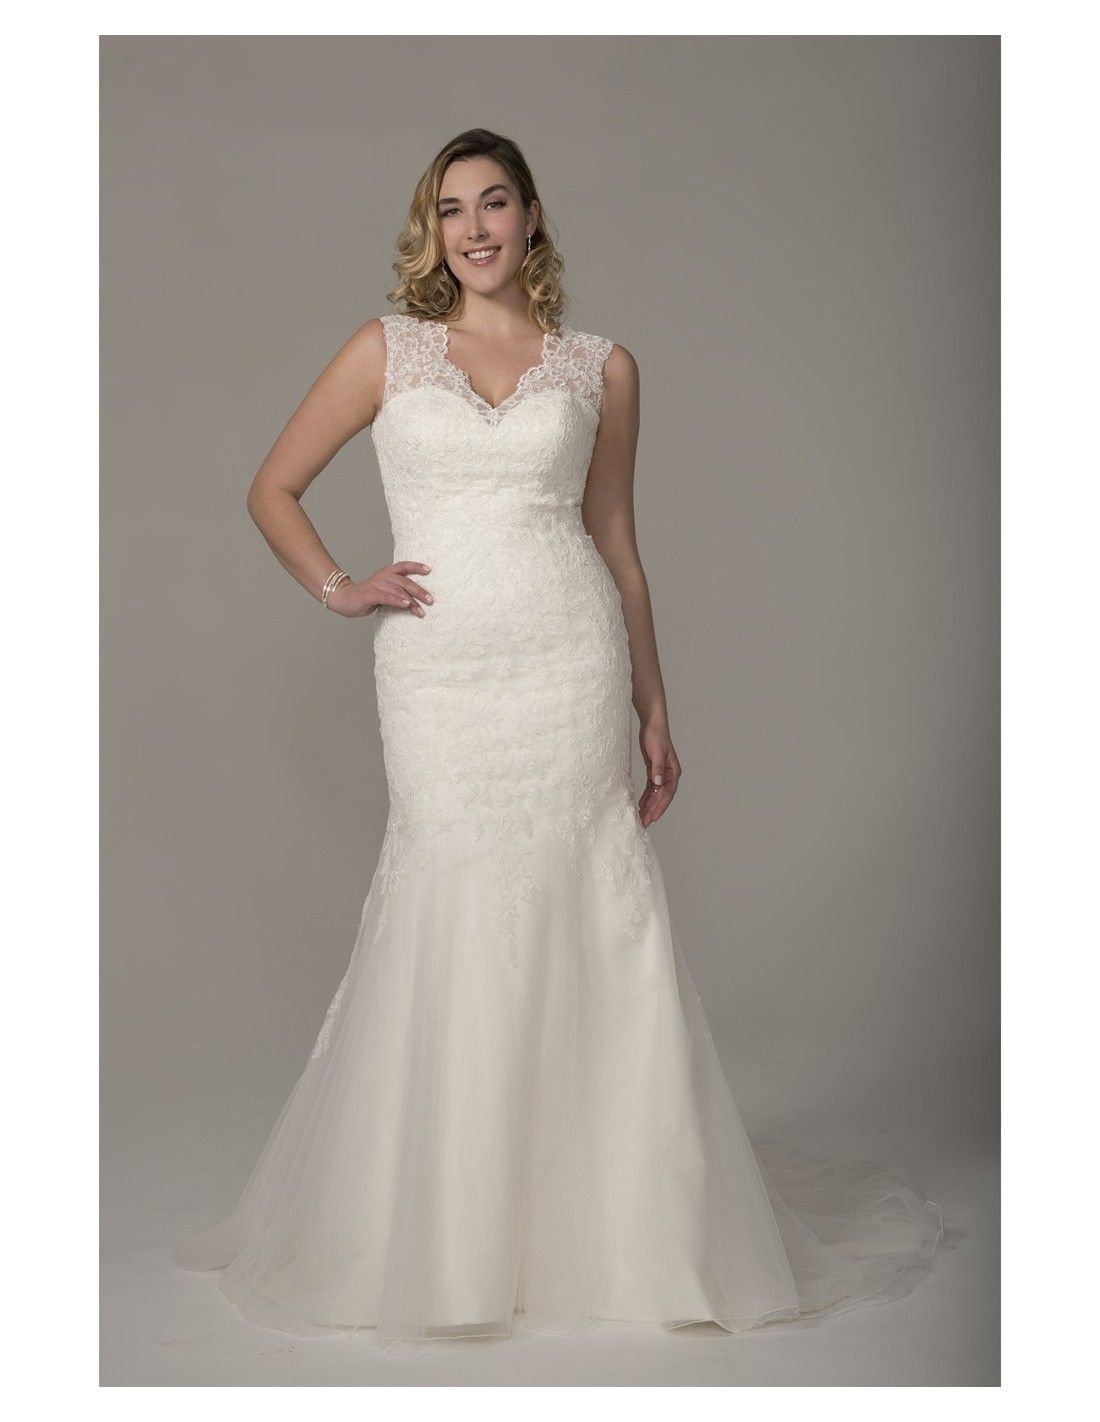 Classic lace fit n flare available at Spotlight Formal Wear! #SpotlightBridal